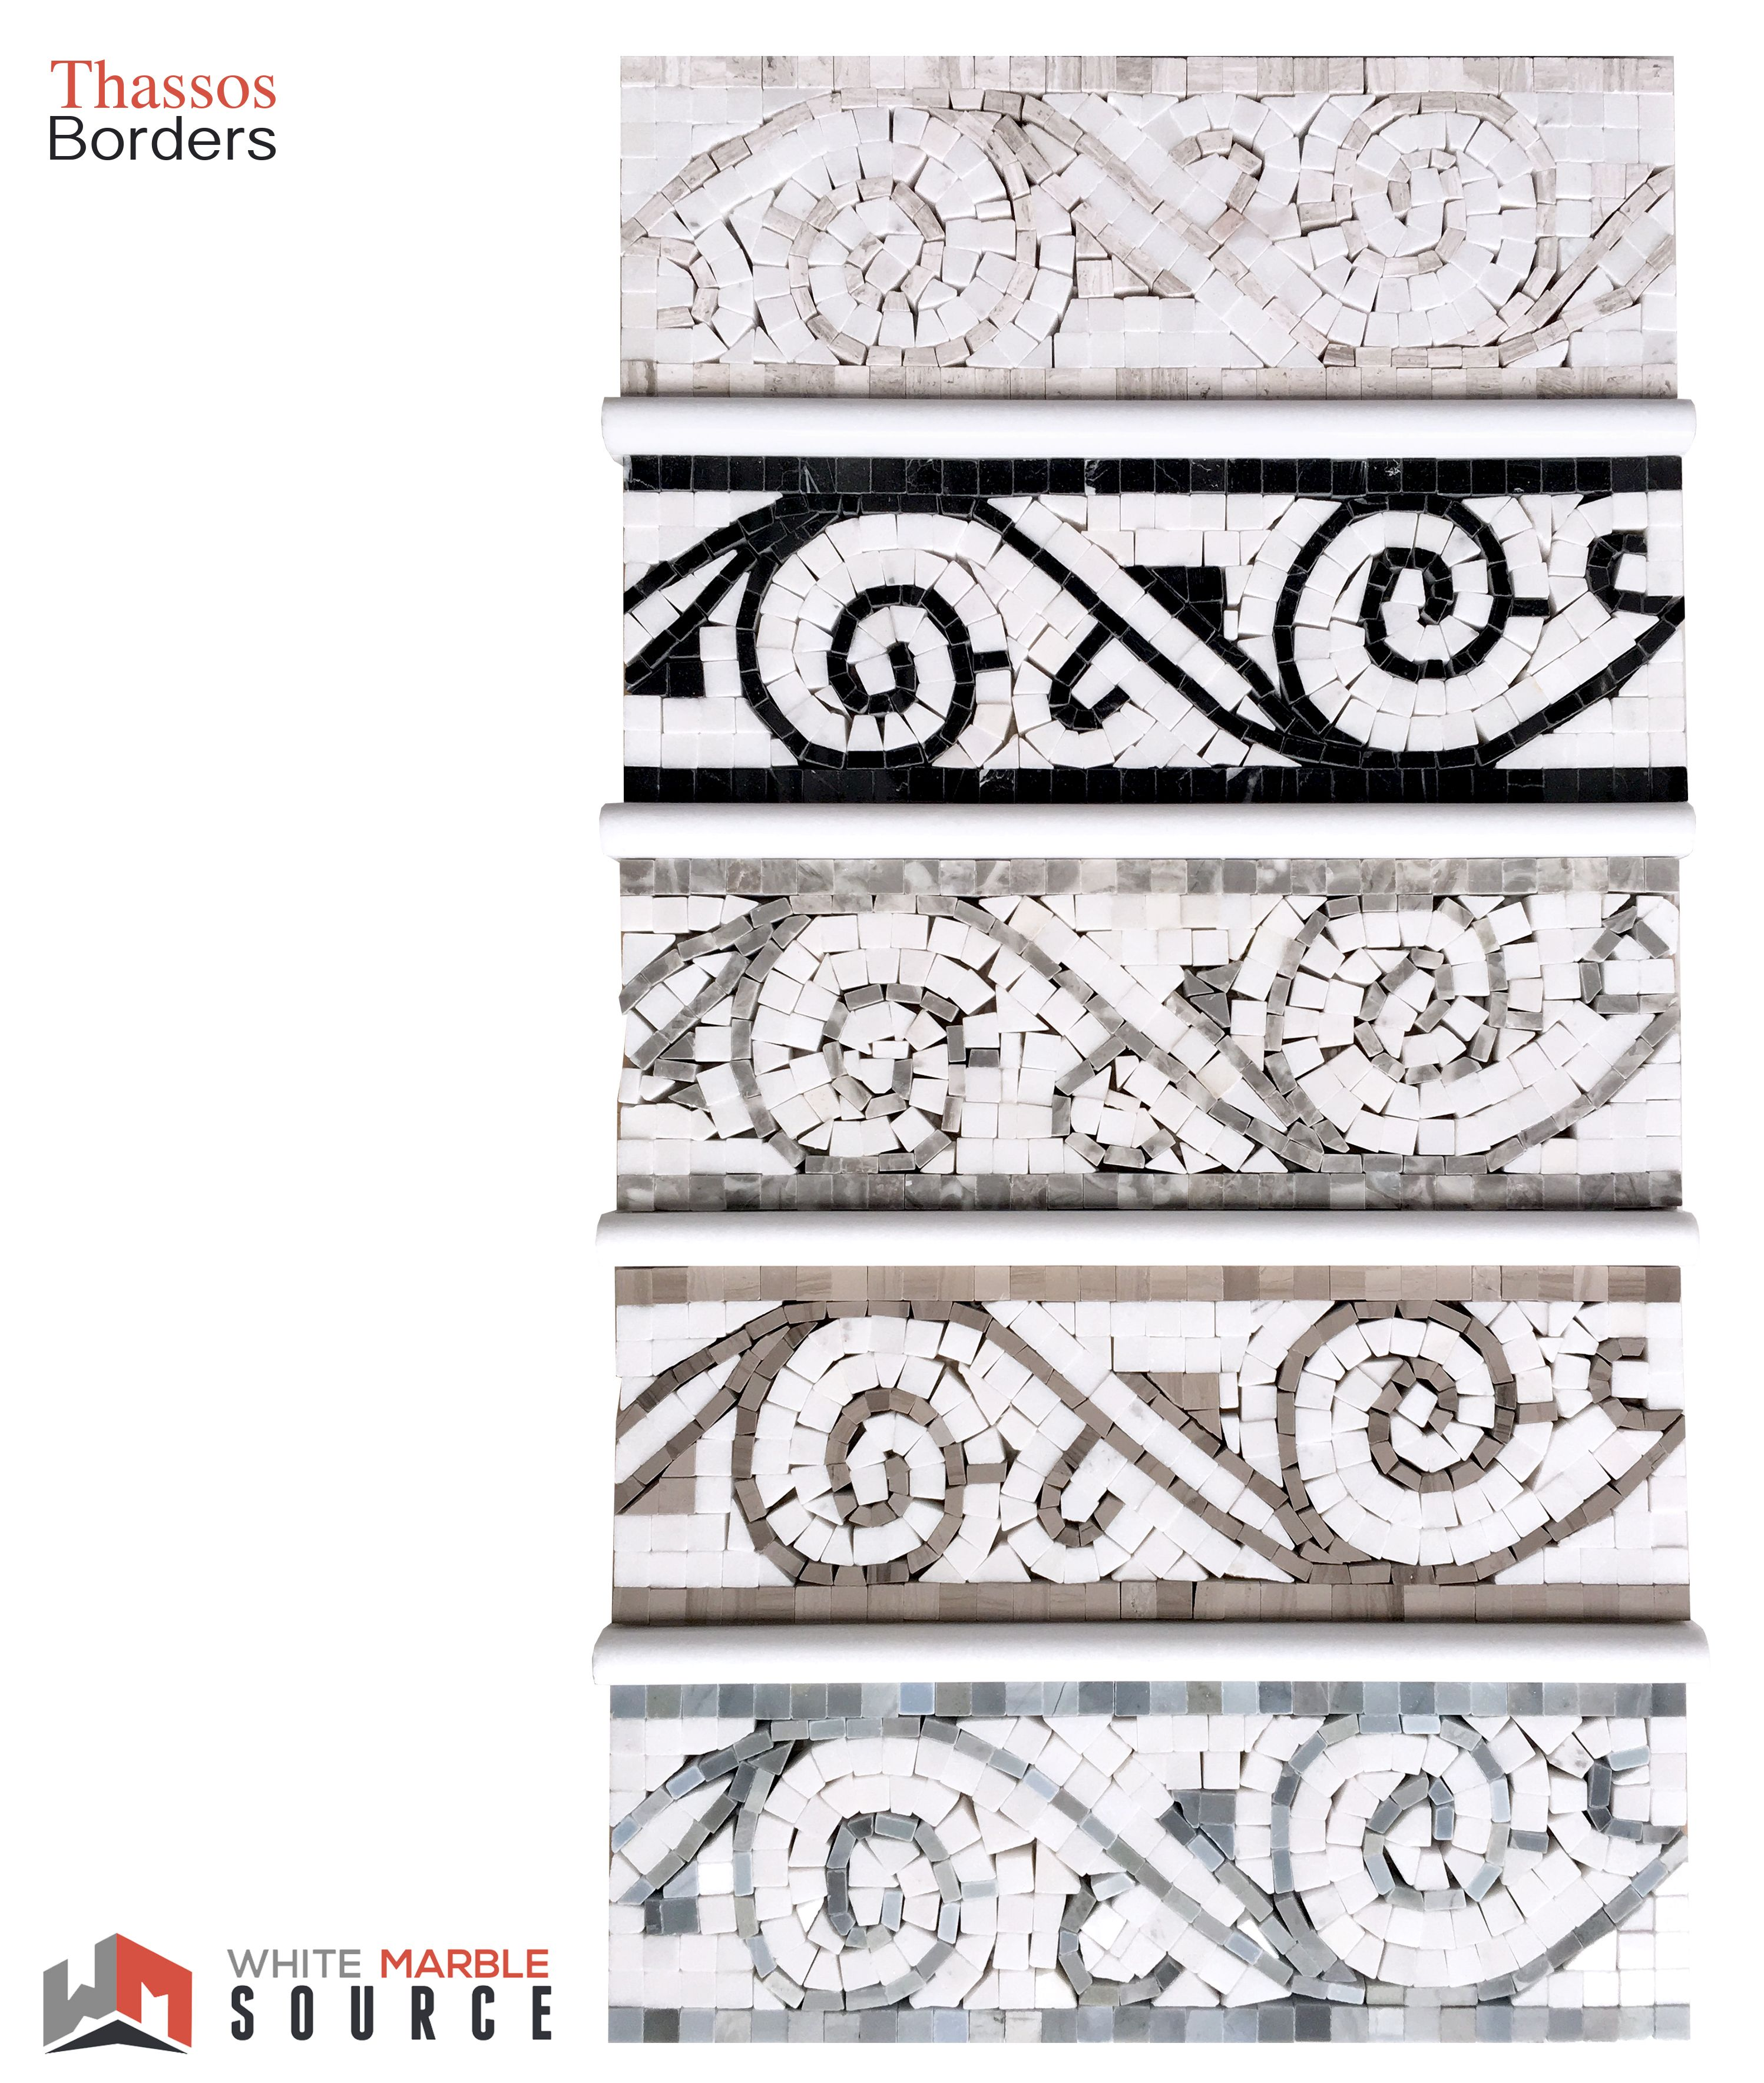 Finally, our new Thassos products are killing it as always! 😏  #white #marble #interior #design #mosaics #tiles #slabs #countertops #tilewholesaler #luxury #bathroom #kitchen #remodeling #ideas #fabulous #homedecor